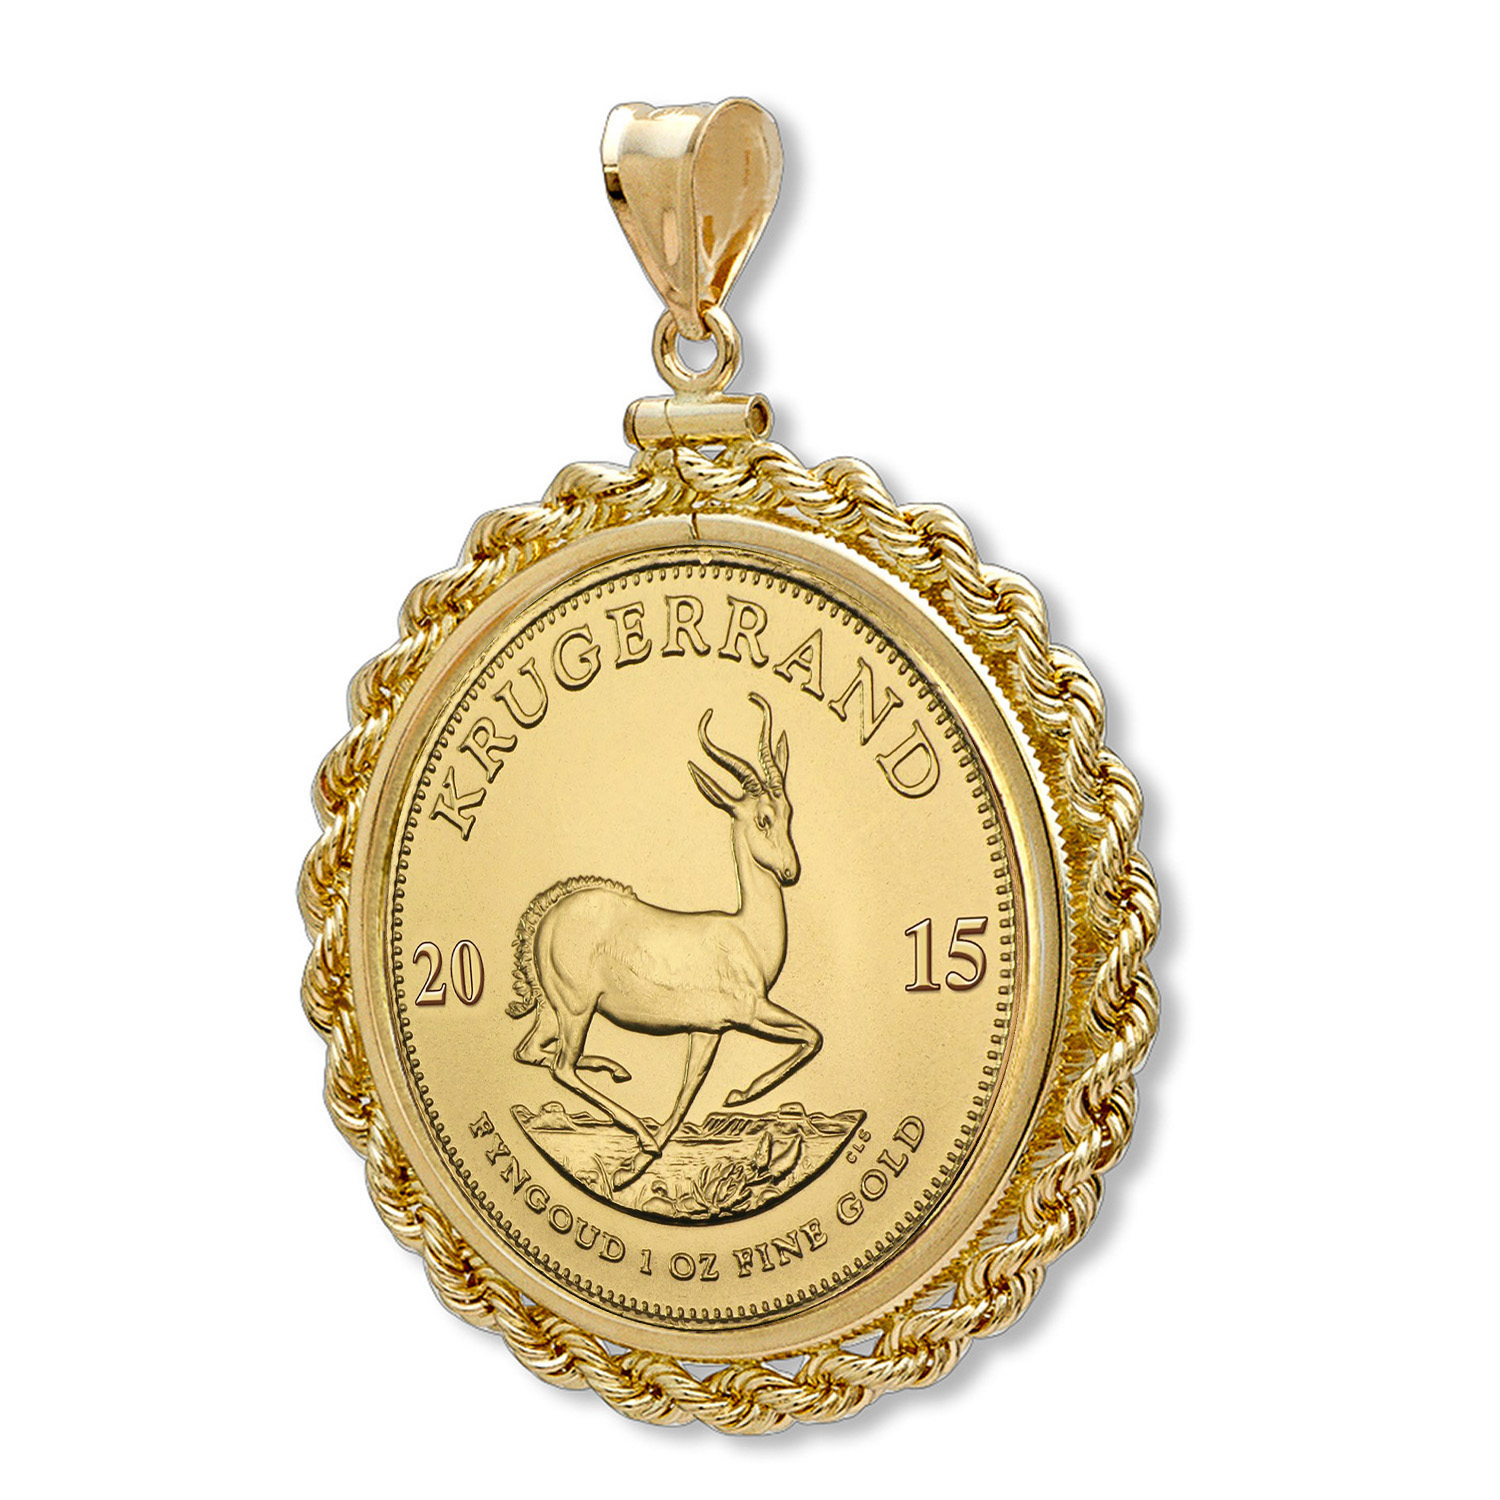 2015 1 oz Gold Krugerrand Pendant (Rope-ScrewTop Bezel)